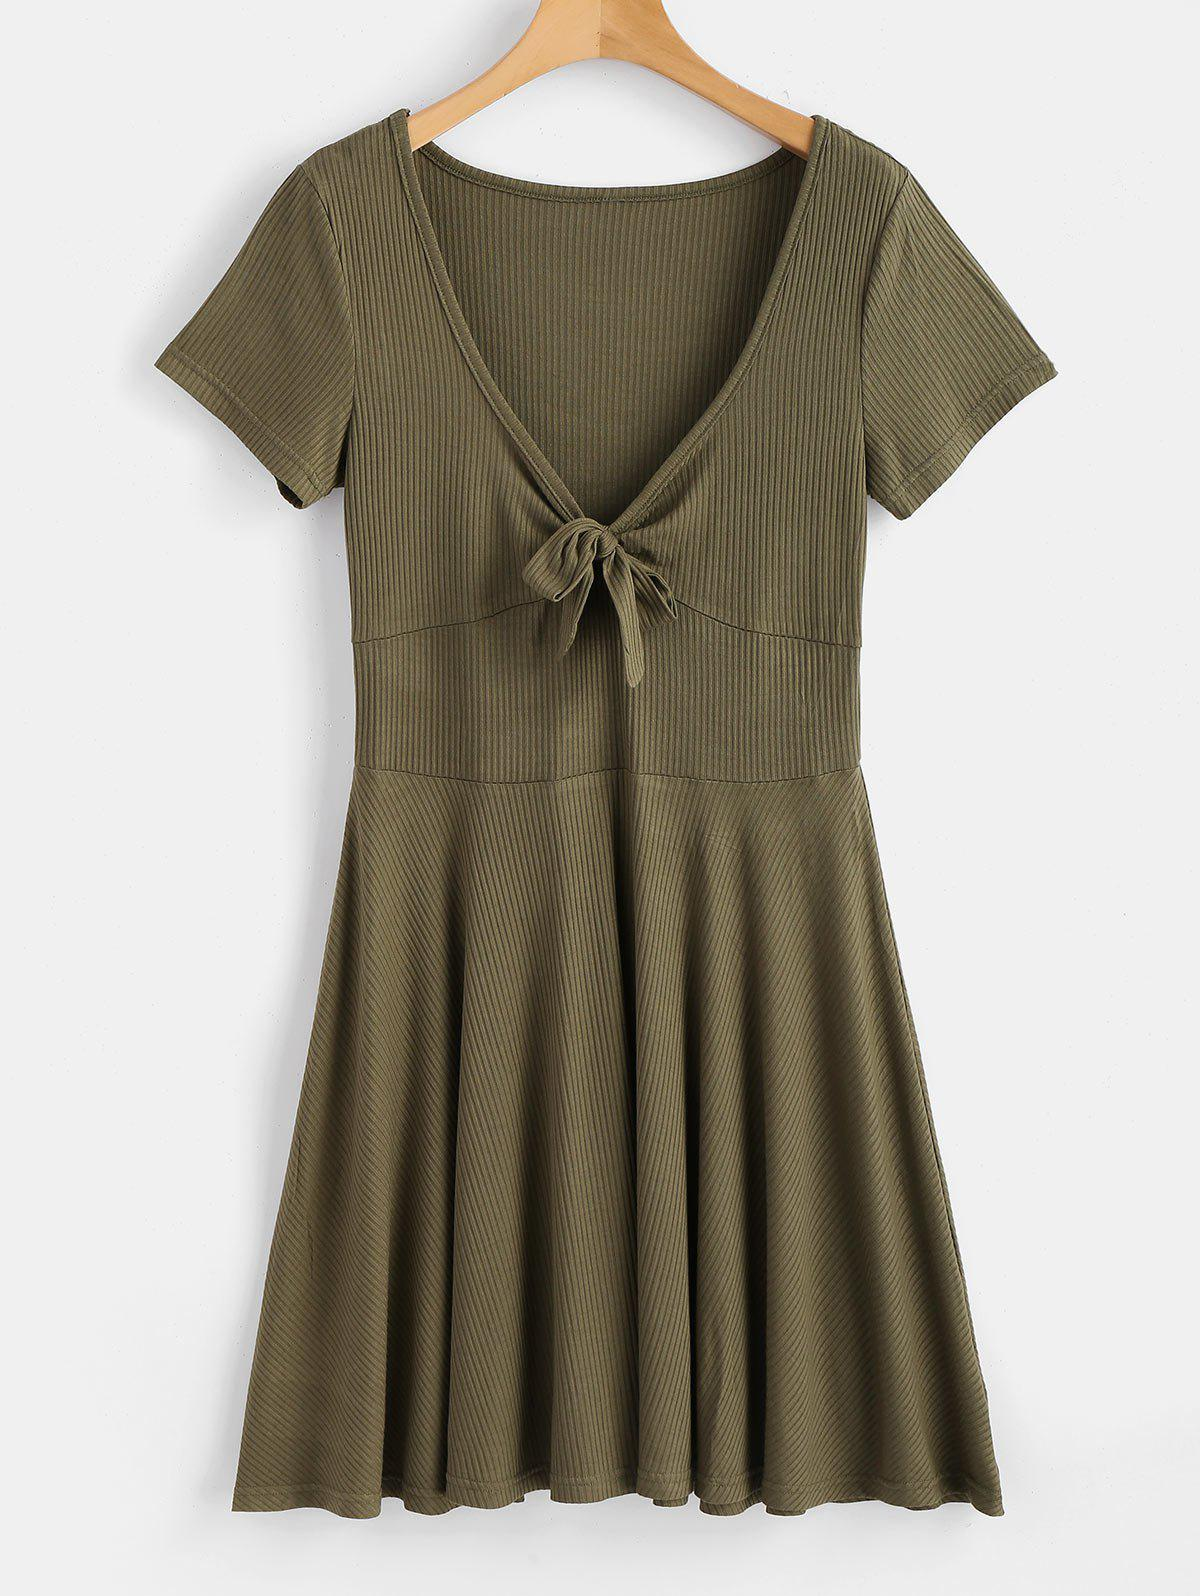 Tied Front Low Cut Dress